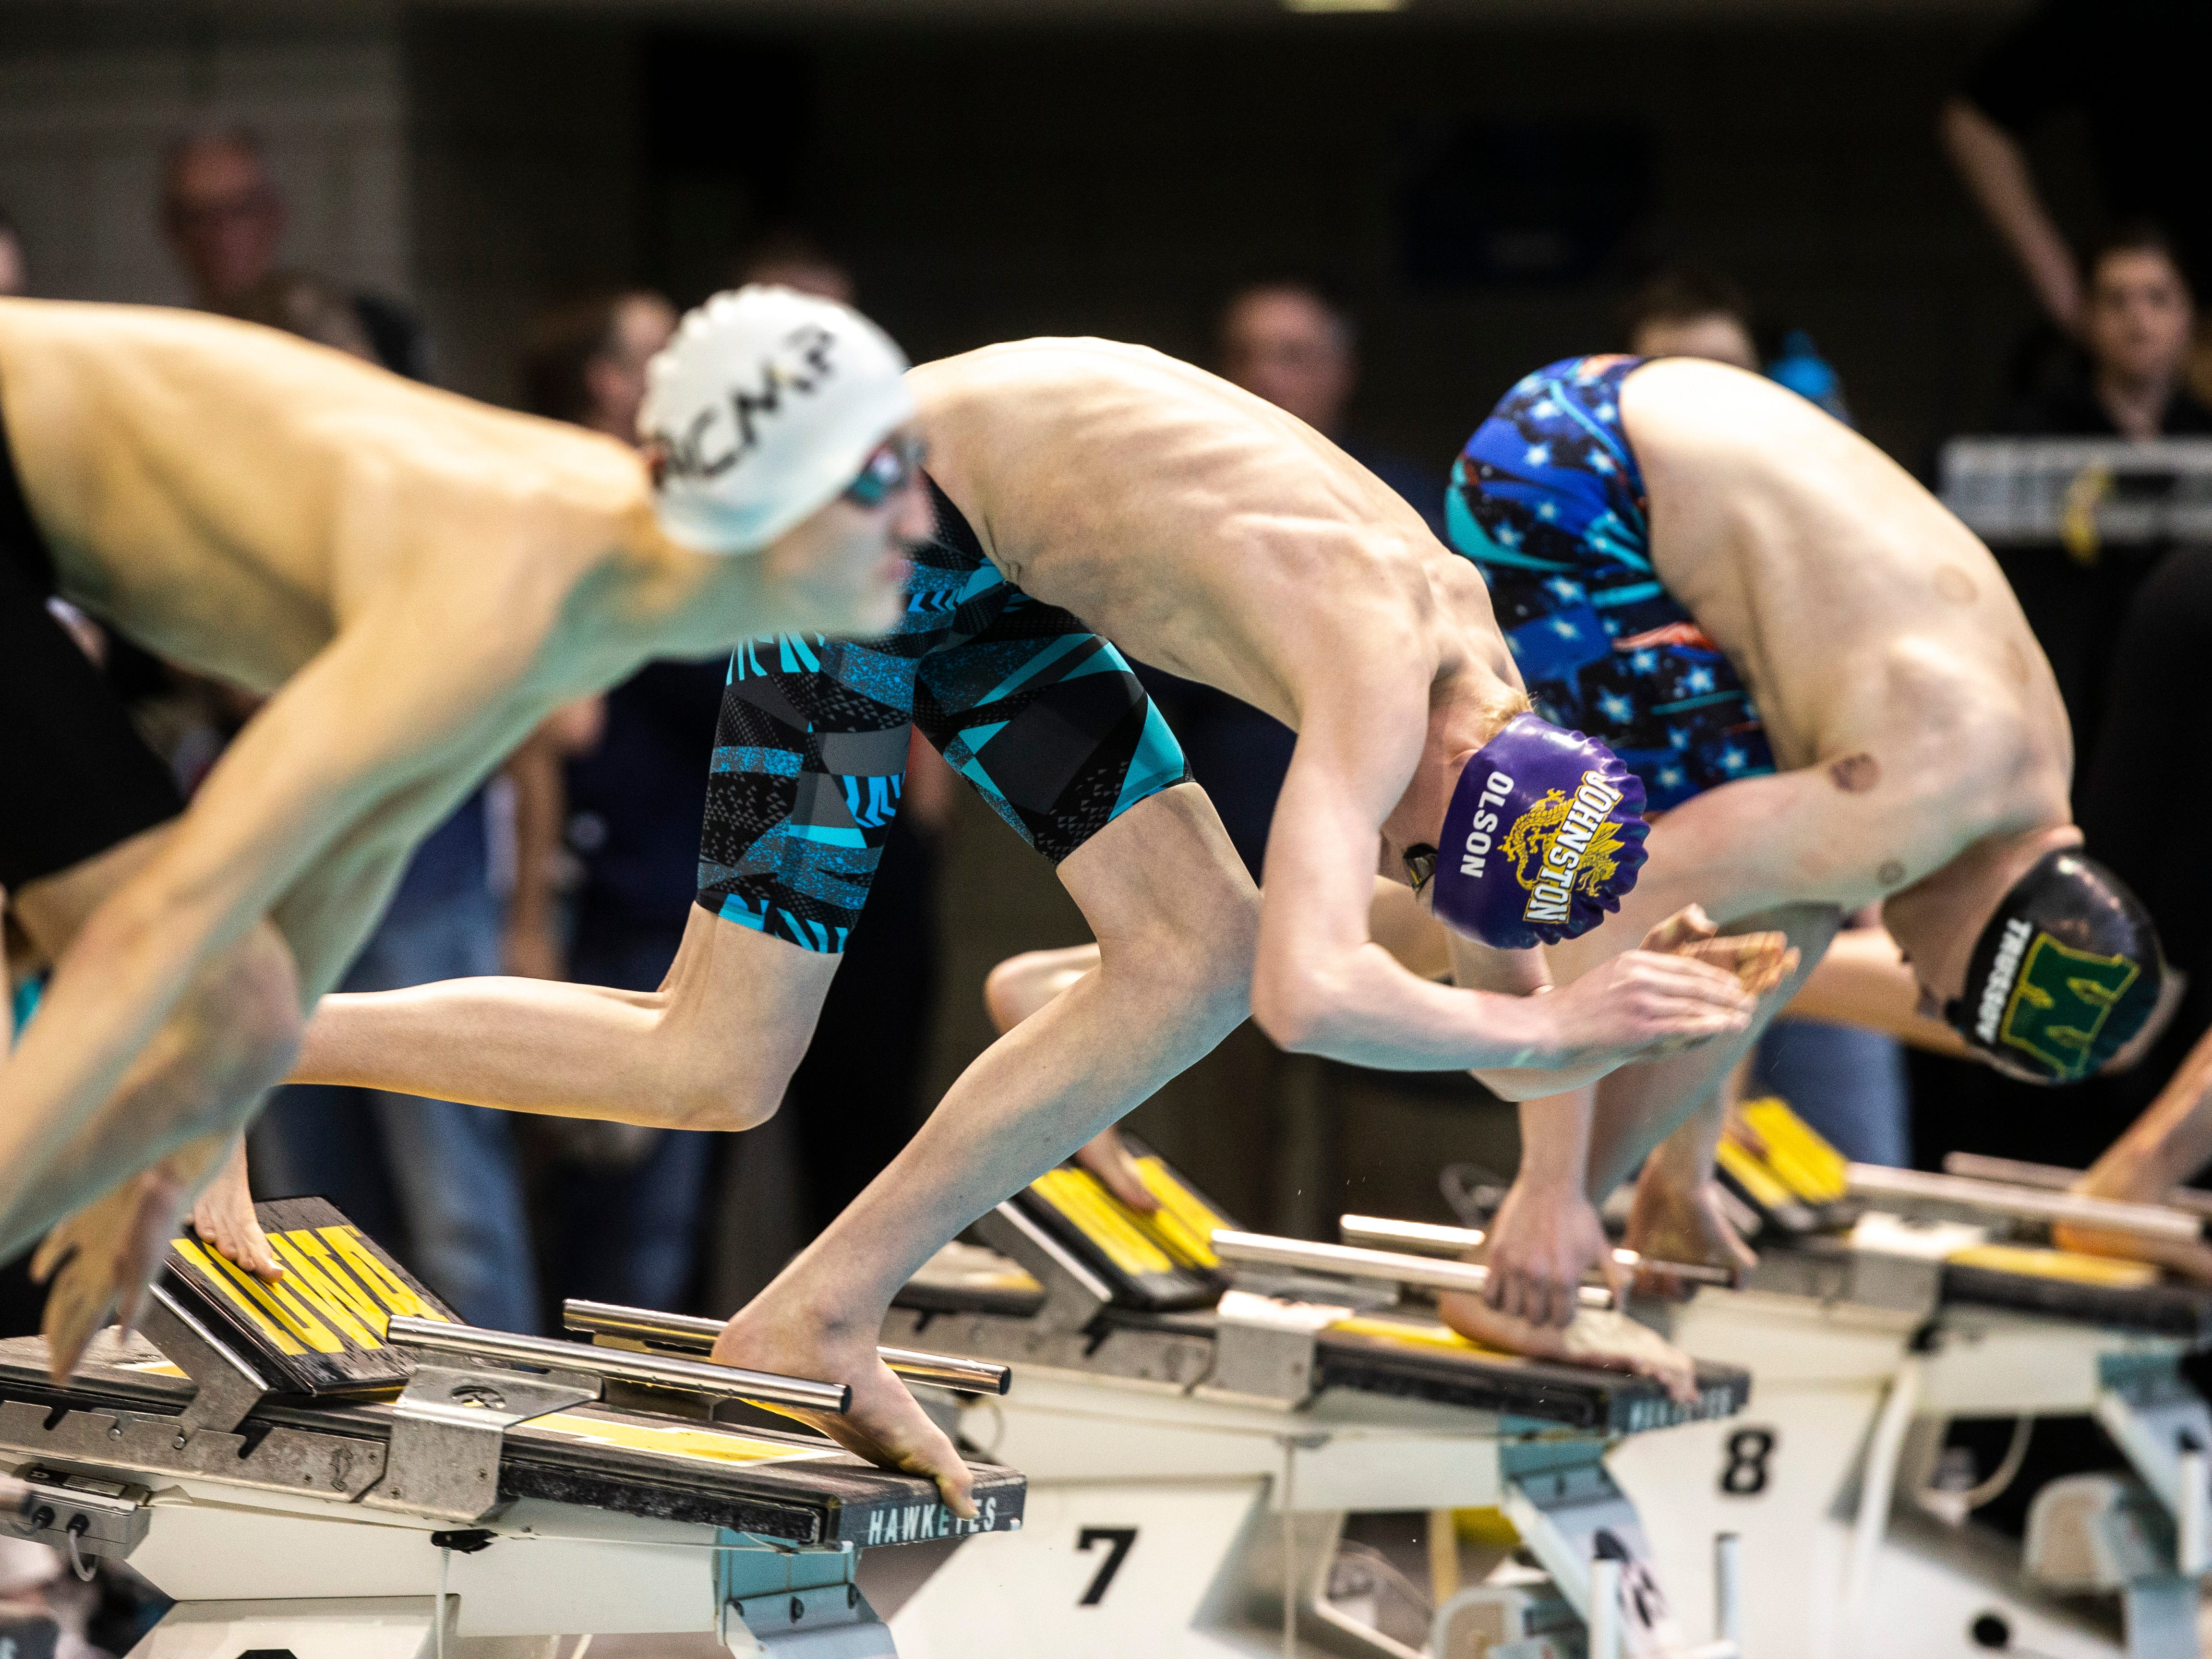 Johnston sophomore Spencer Olson leaps off the blocks in the first heat of 100 yard breaststroke during the Iowa boys' state swimming regional championship meet on Saturday, Feb. 9, 2019 at Campus Recreation and Wellness Center on the University of Iowa campus in Iowa City, Iowa. Olson finished 23rd overall, with a time of 1:03.02.